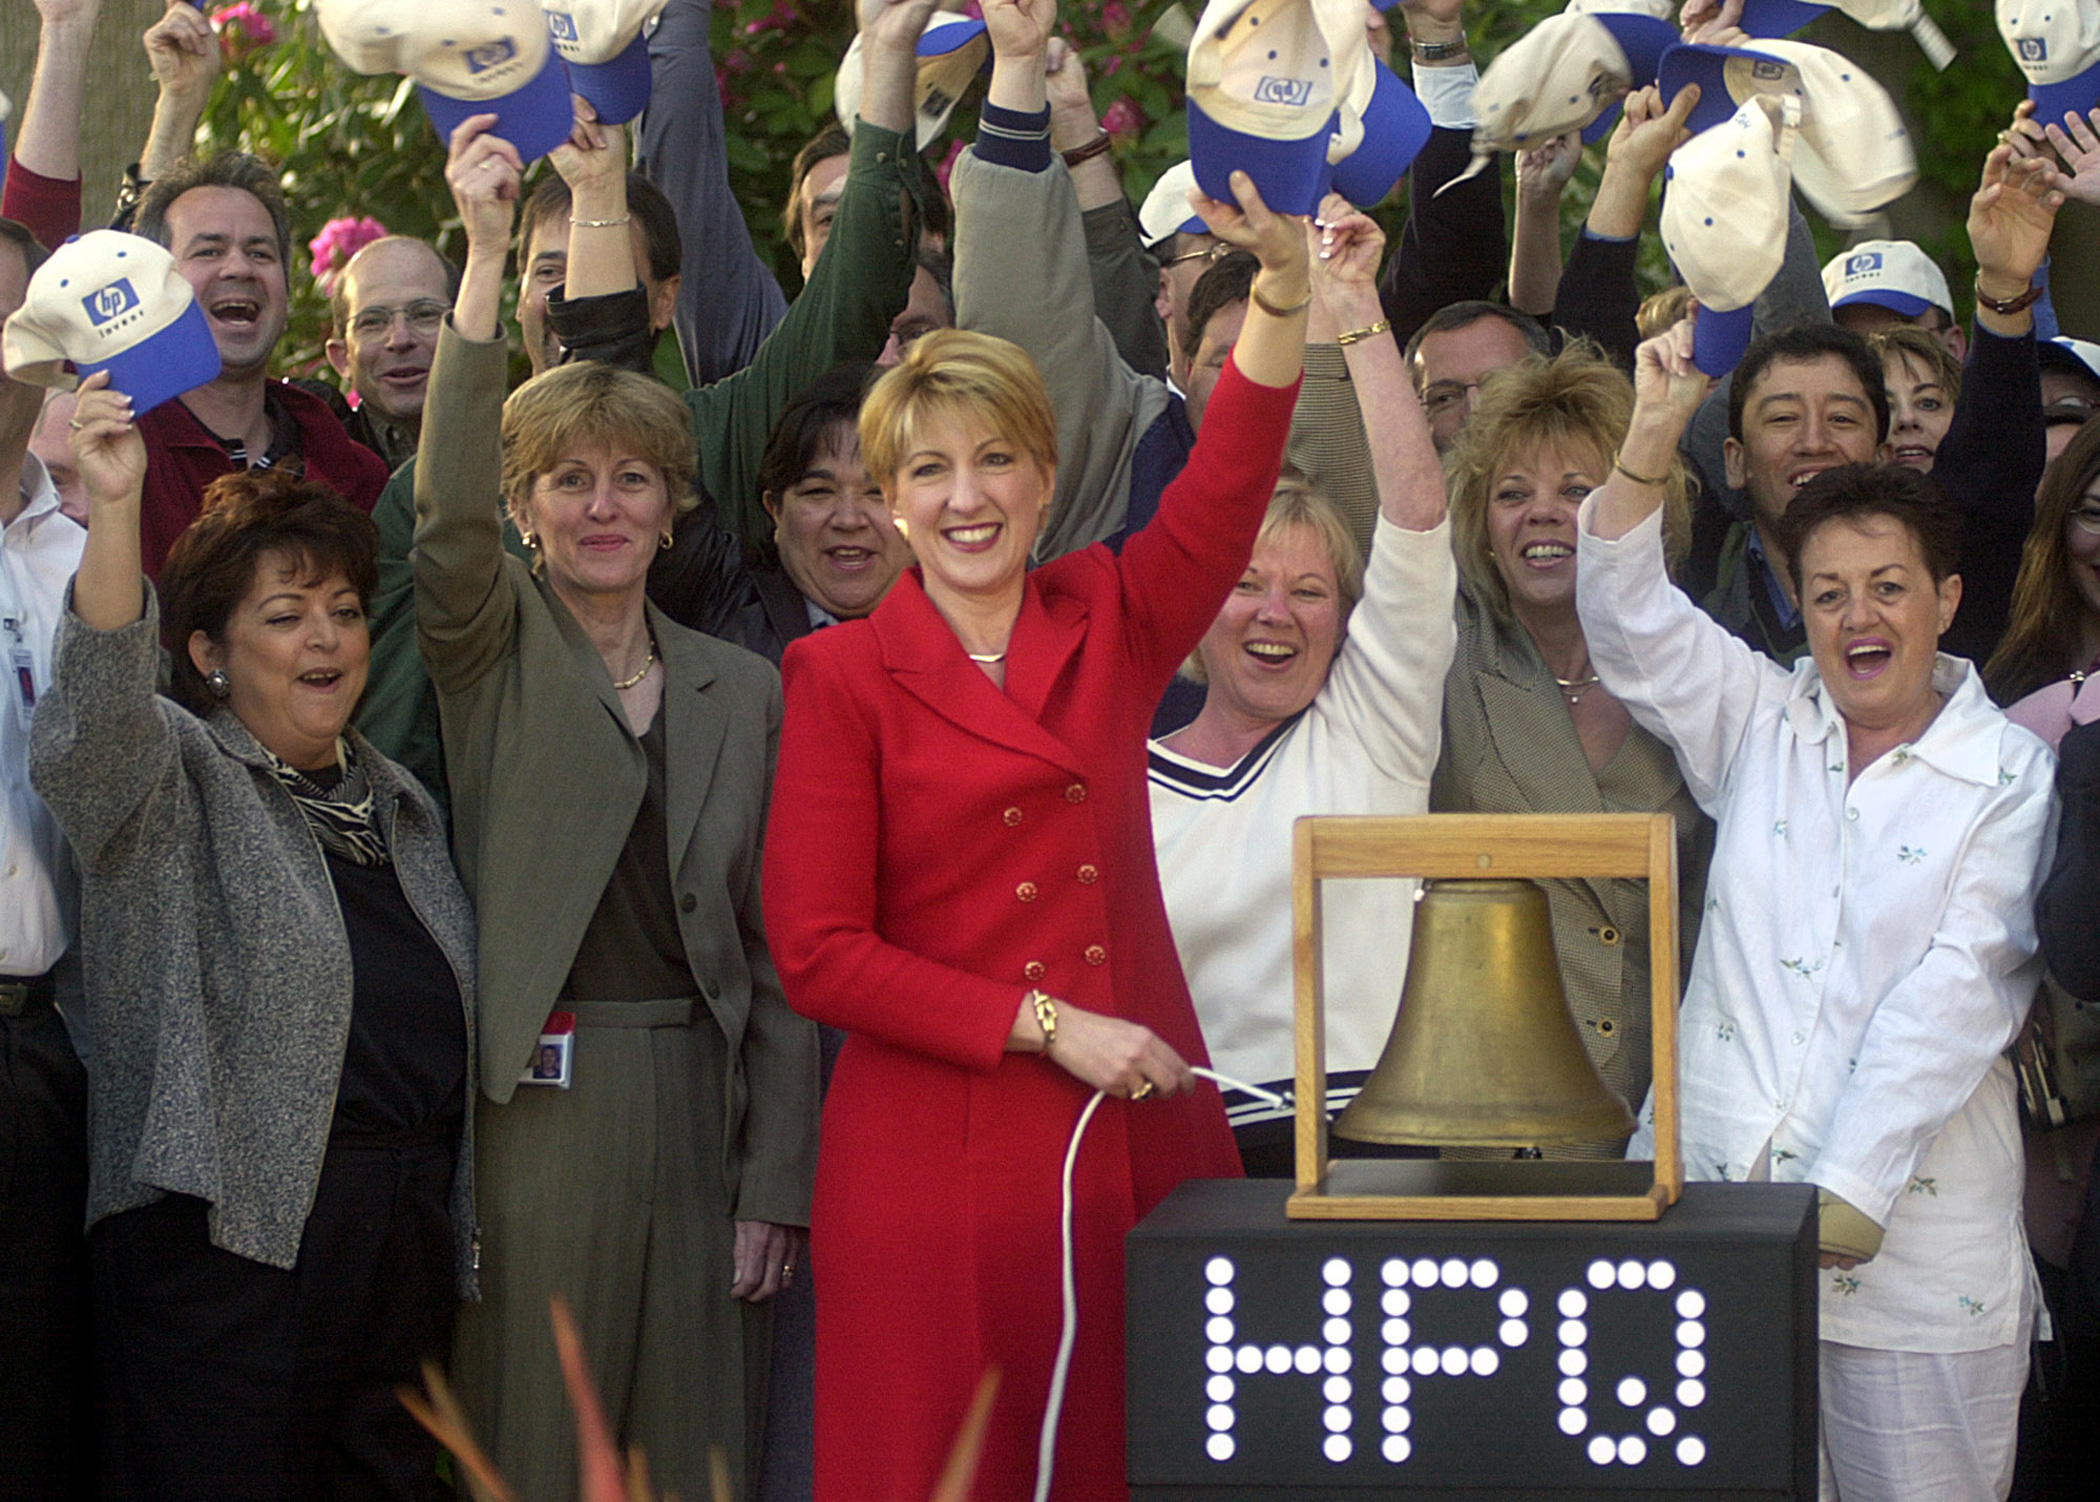 Carly Fiorina rang a bell to virtually open the New York Stock Exchange from HP's headquarters on May 6, 2002 in Palo Alto, Calif.